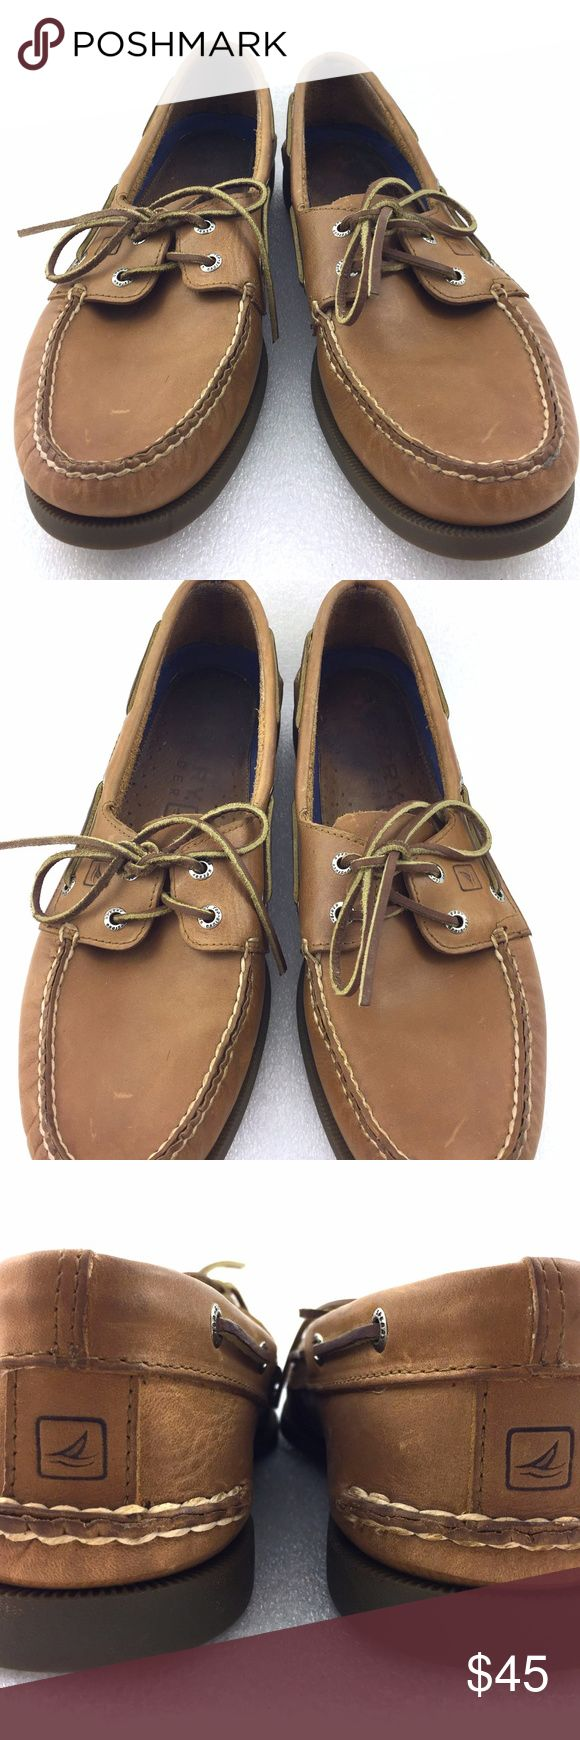 """Brown Boat Shoes Leather 10M Mens Sperry Topsider For sale is a pair of boat shoes from Sperry Topsider in brown leather  Size: 10M Length: 11.5"""" from back of heel to front of toe  Width: 4.2"""" at widest part of soles  I will ship your shoes out within 24 hours  Thank you Sperry Shoes Boat Shoes"""